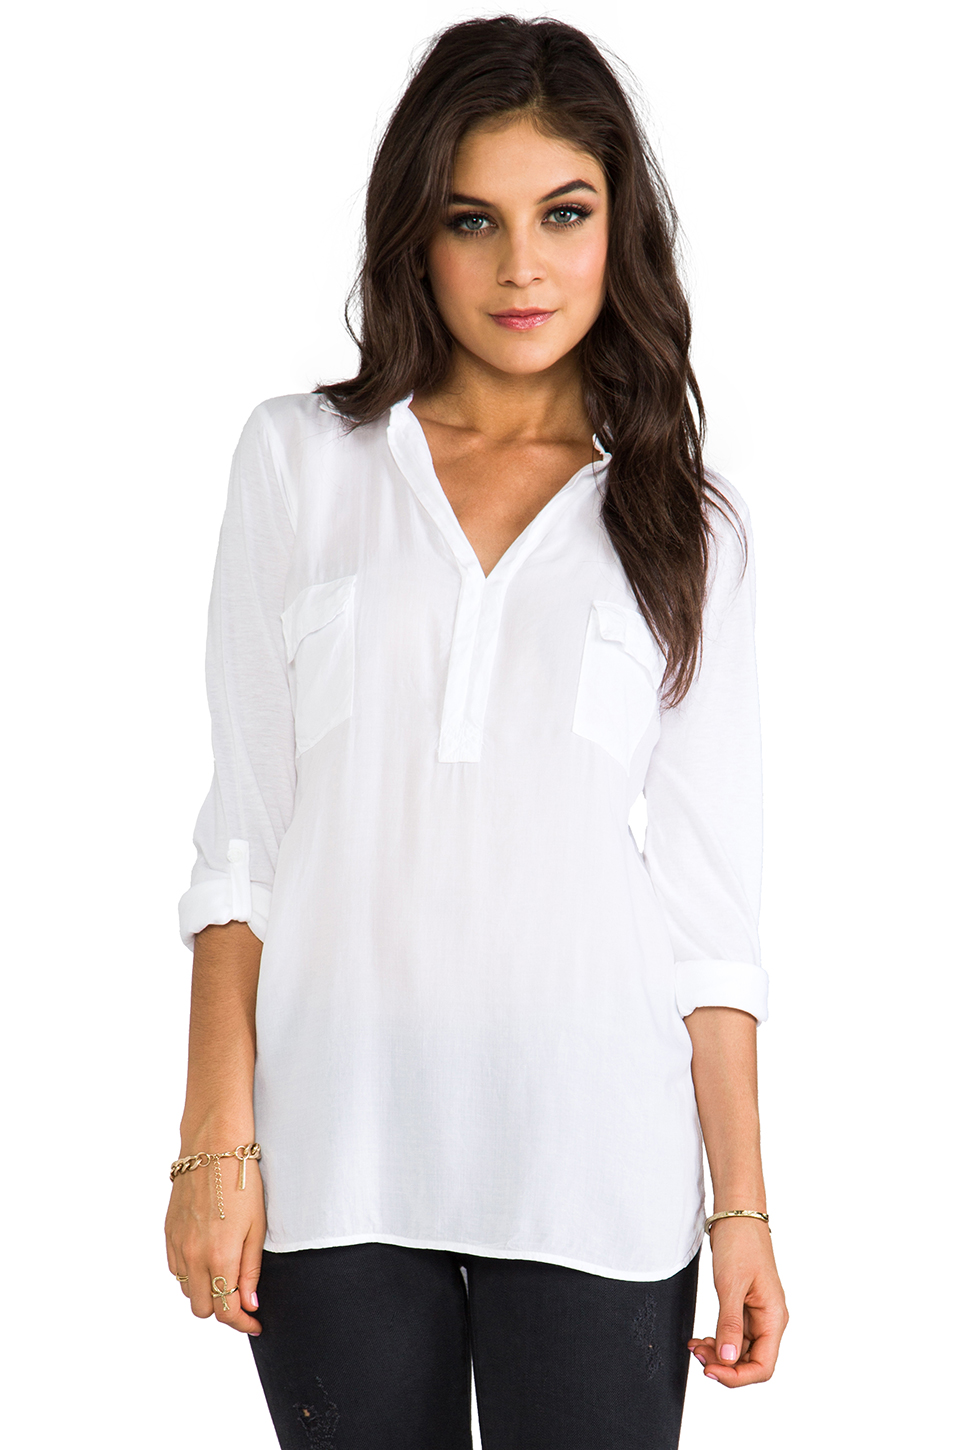 Splendid Blouse with Pockets in White